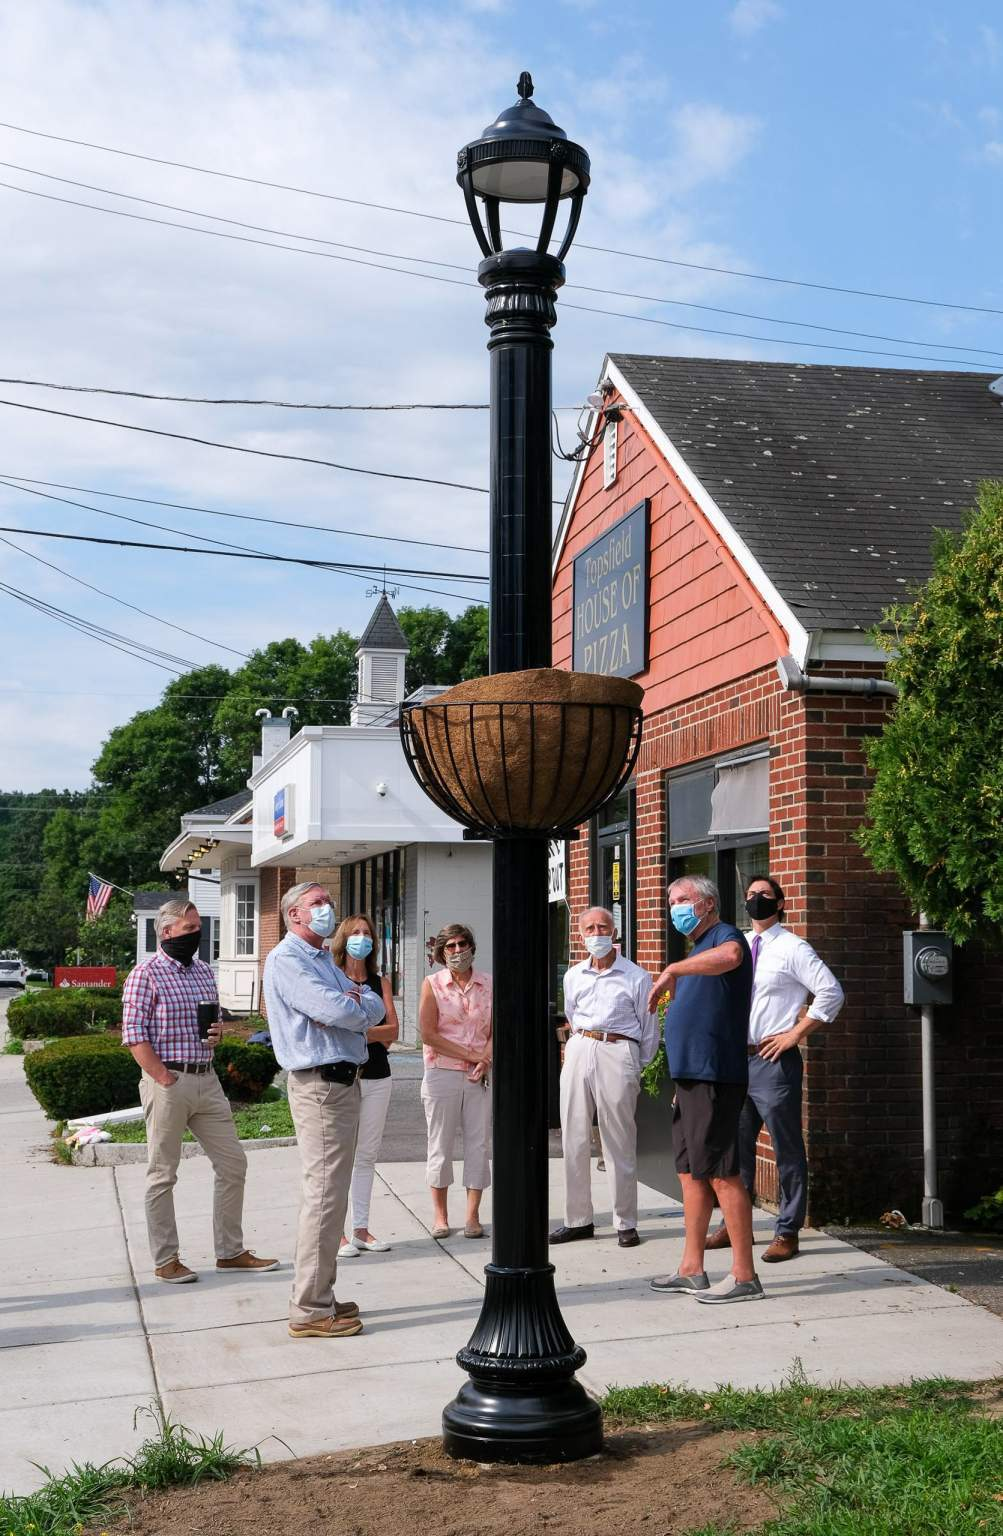 Soluxio solar street light with a traditional look